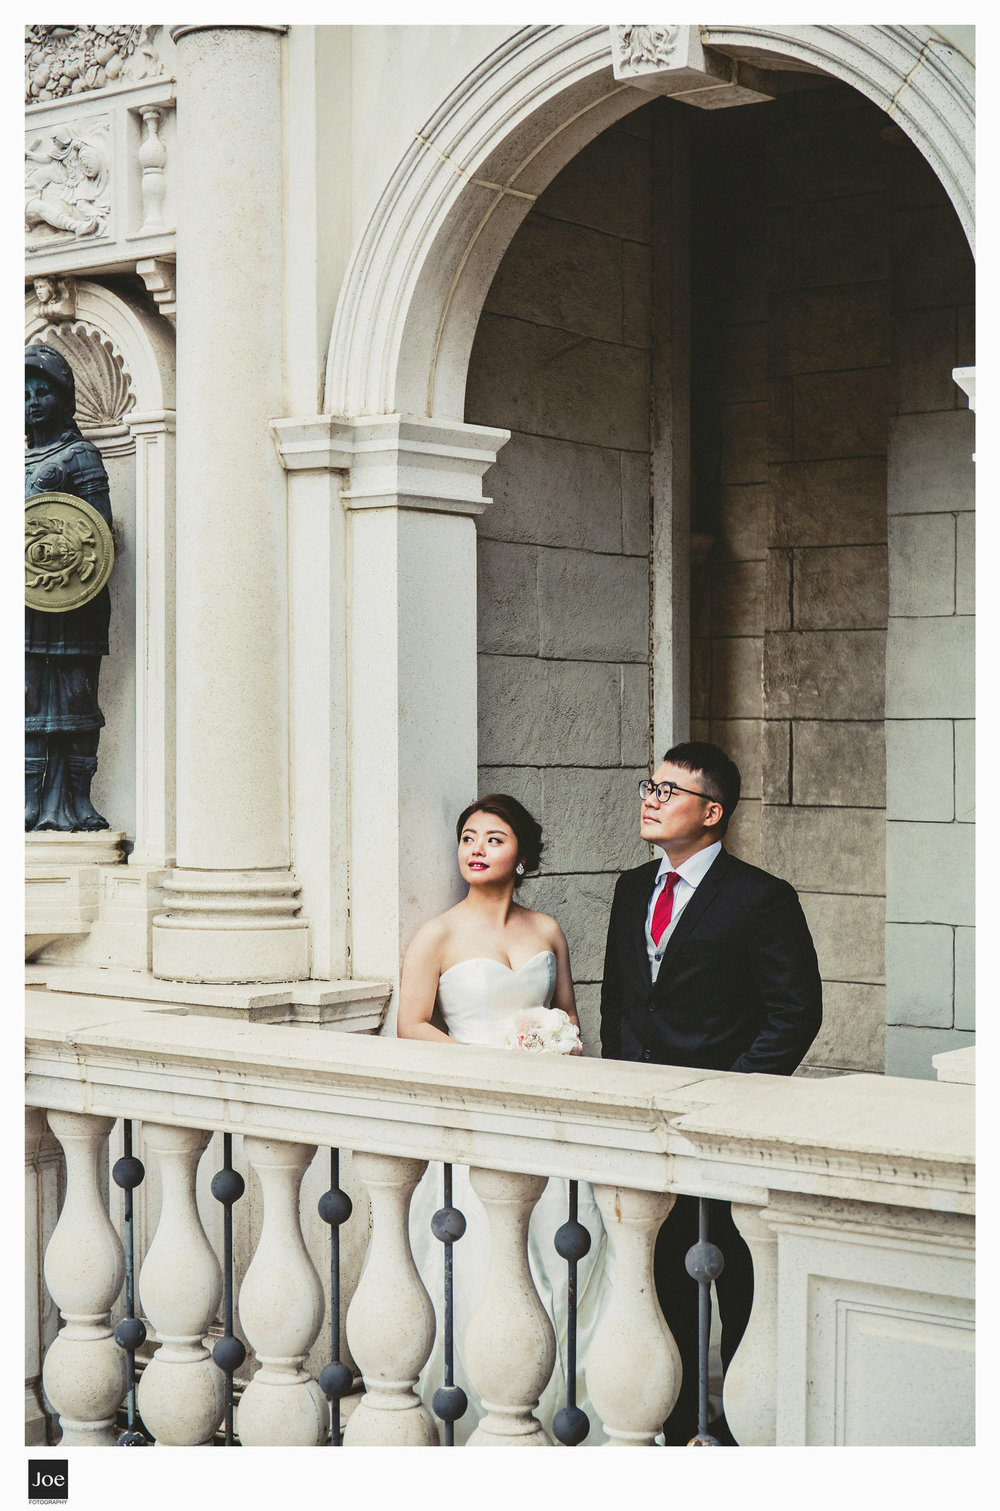 037-venetian-macau-pre-wedding-jie-min-joe-fotography.jpg